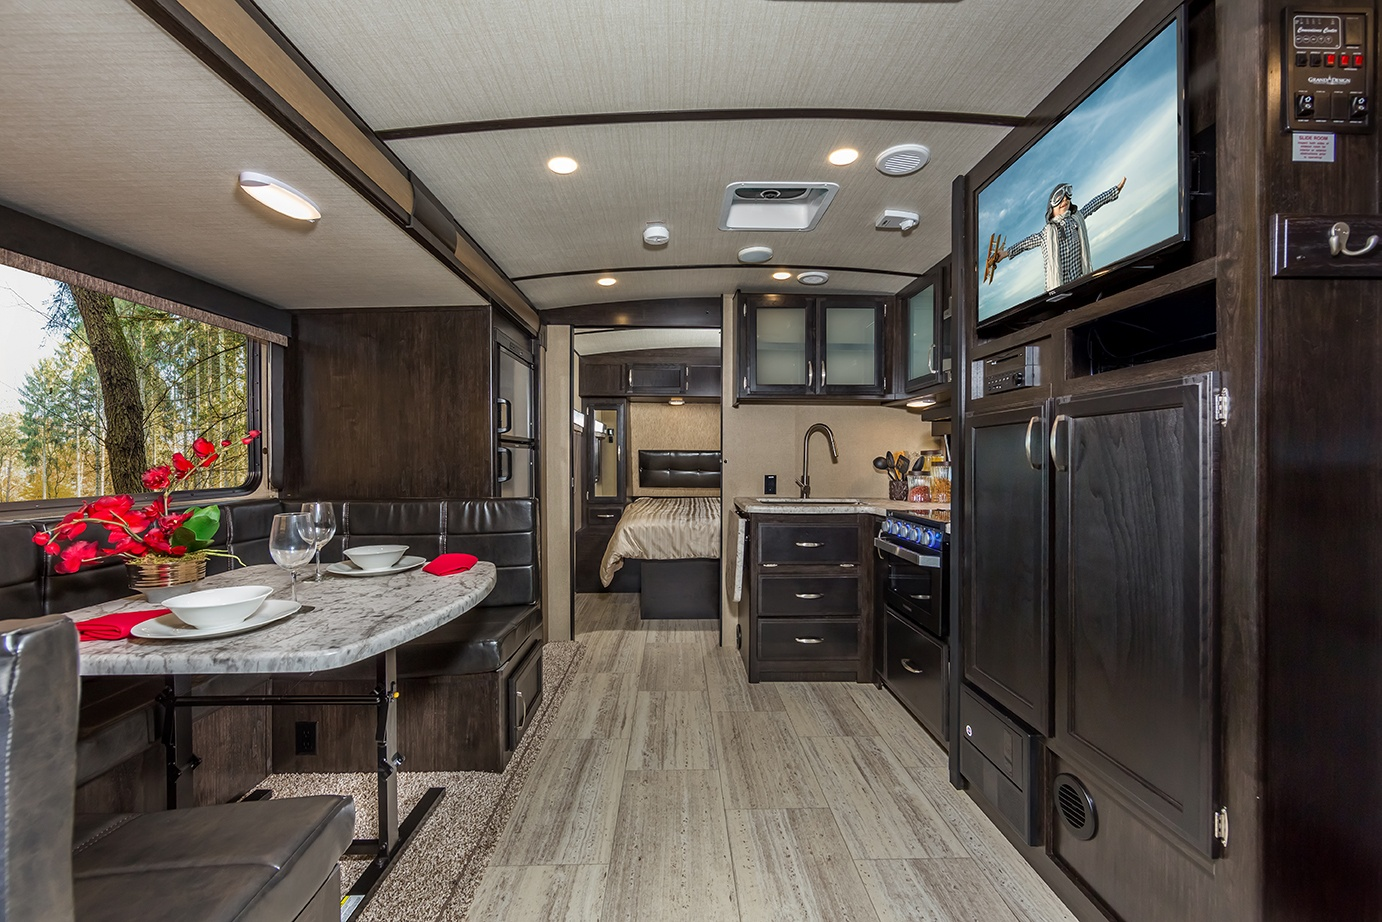 Grand Design Imagine Travel Trailer Interior